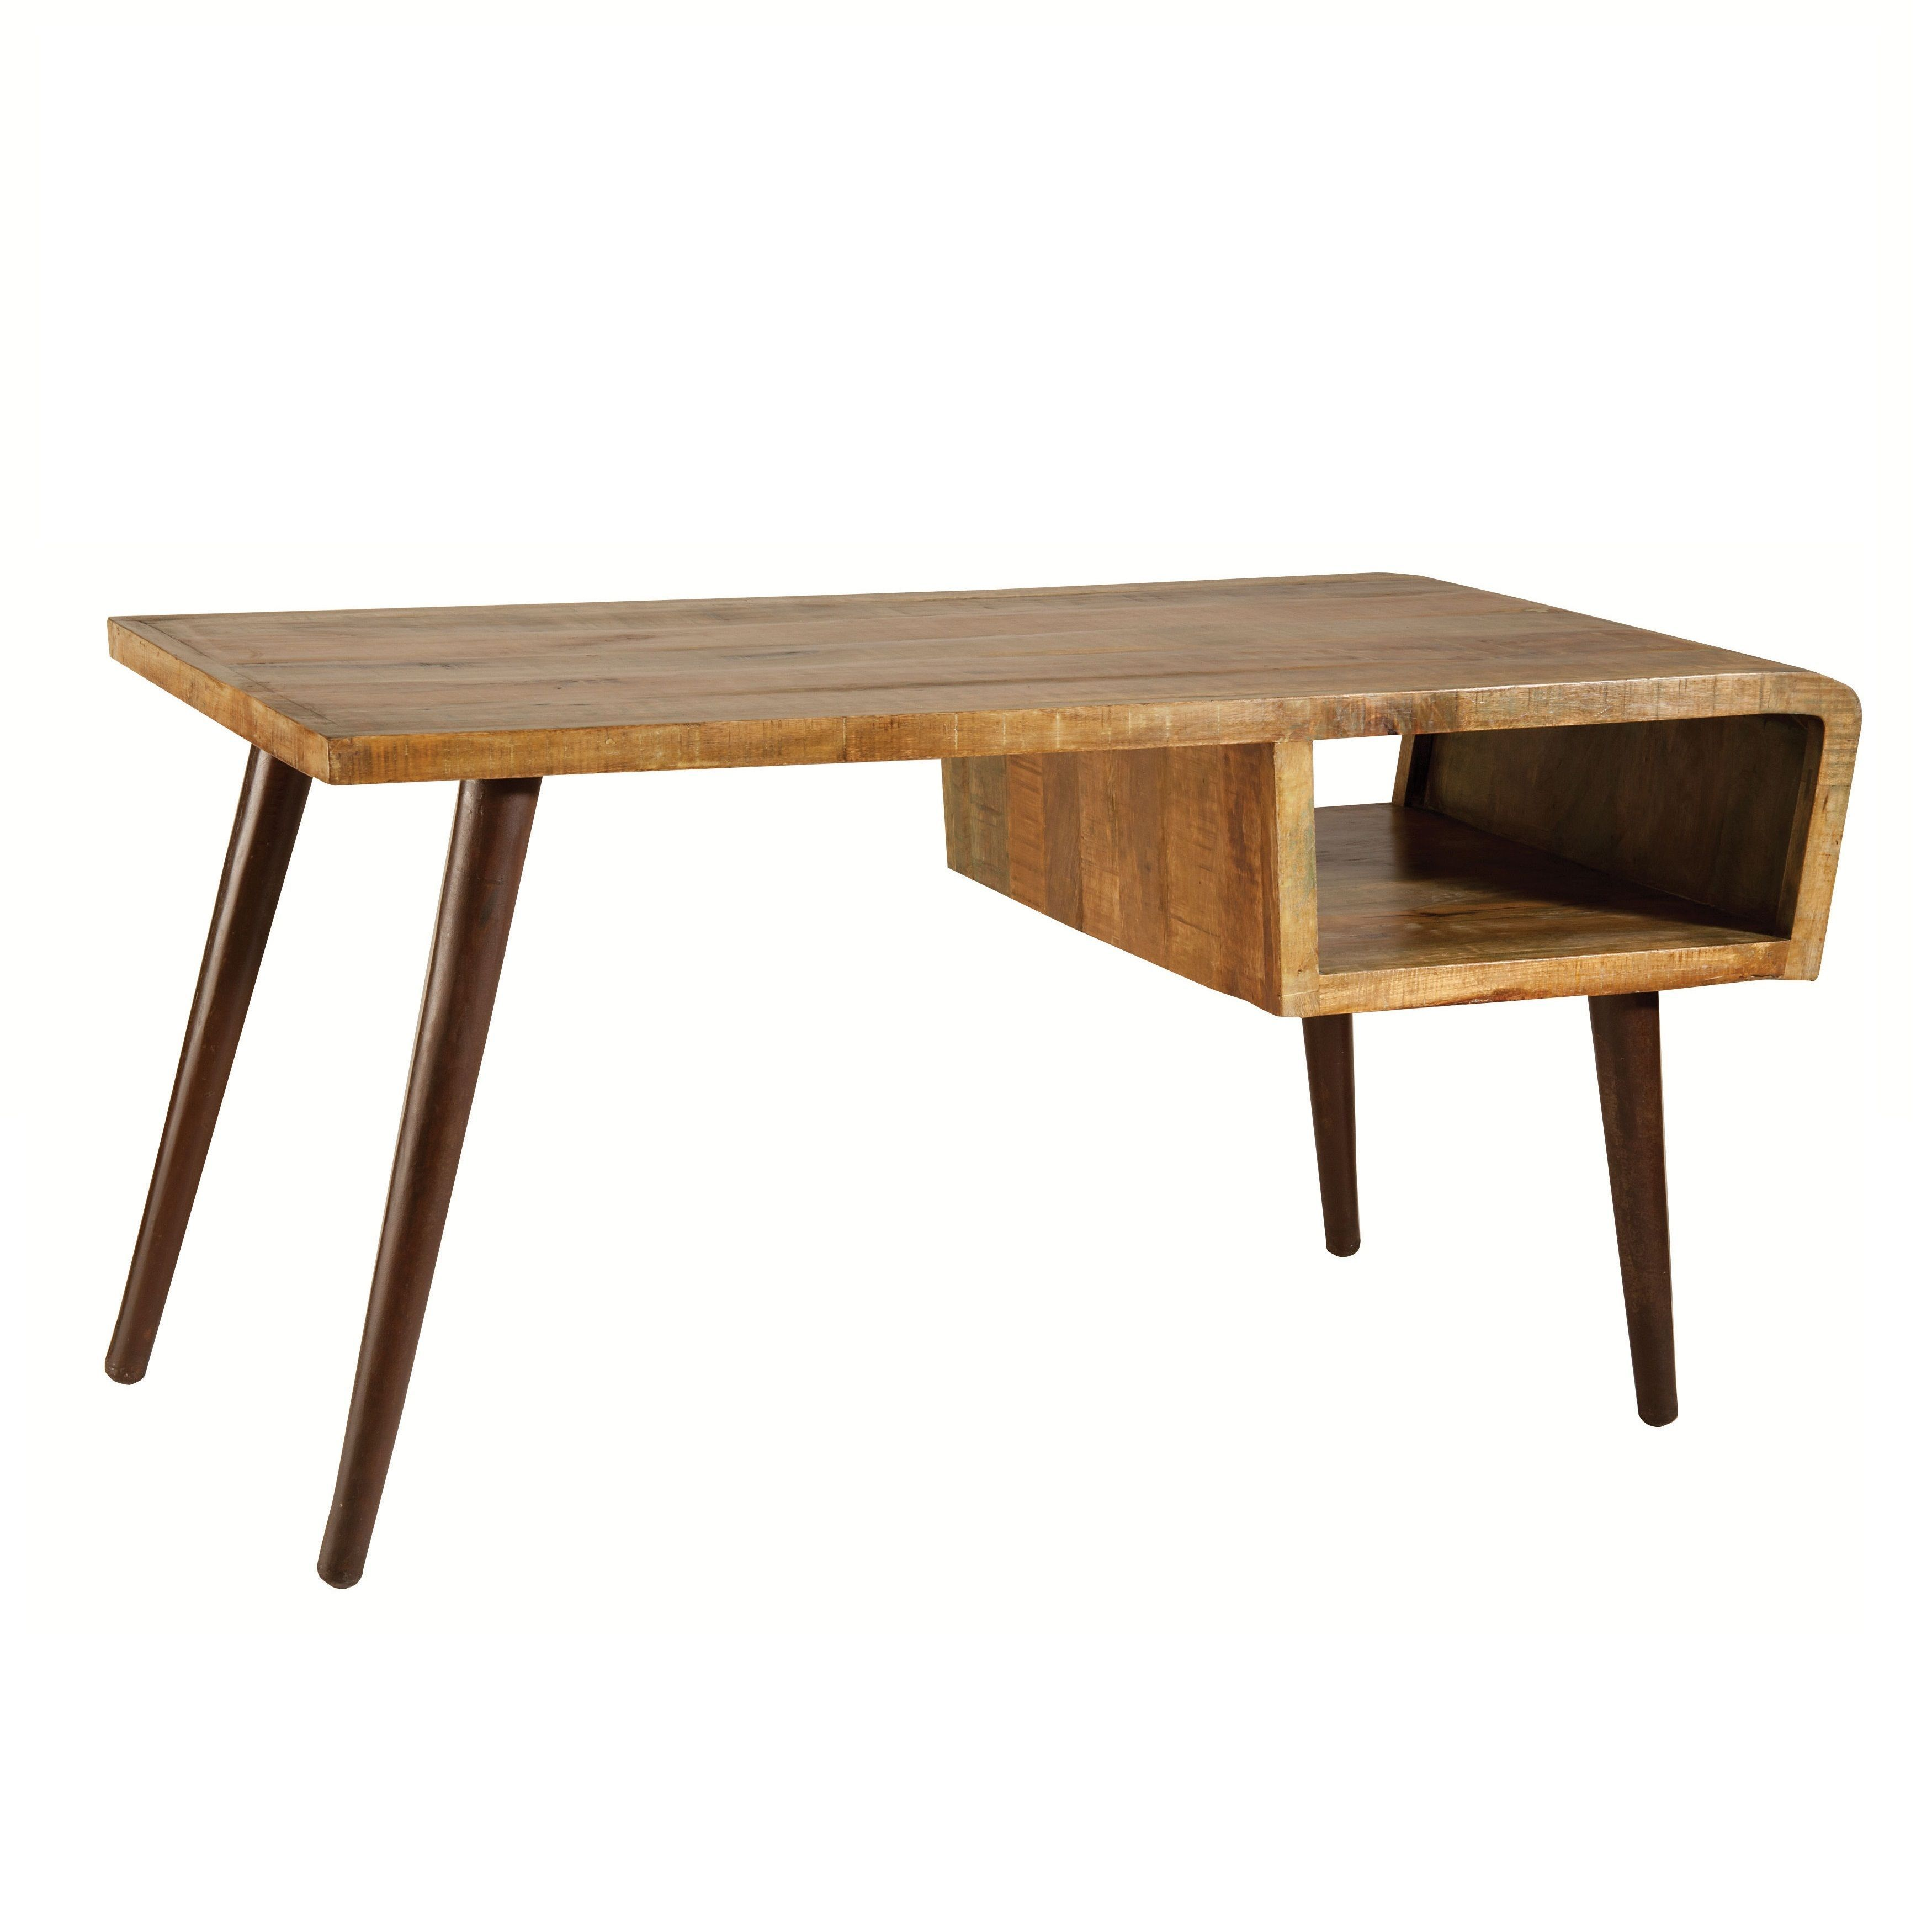 Add a touch of mid century modern flair to your home with the Orbit